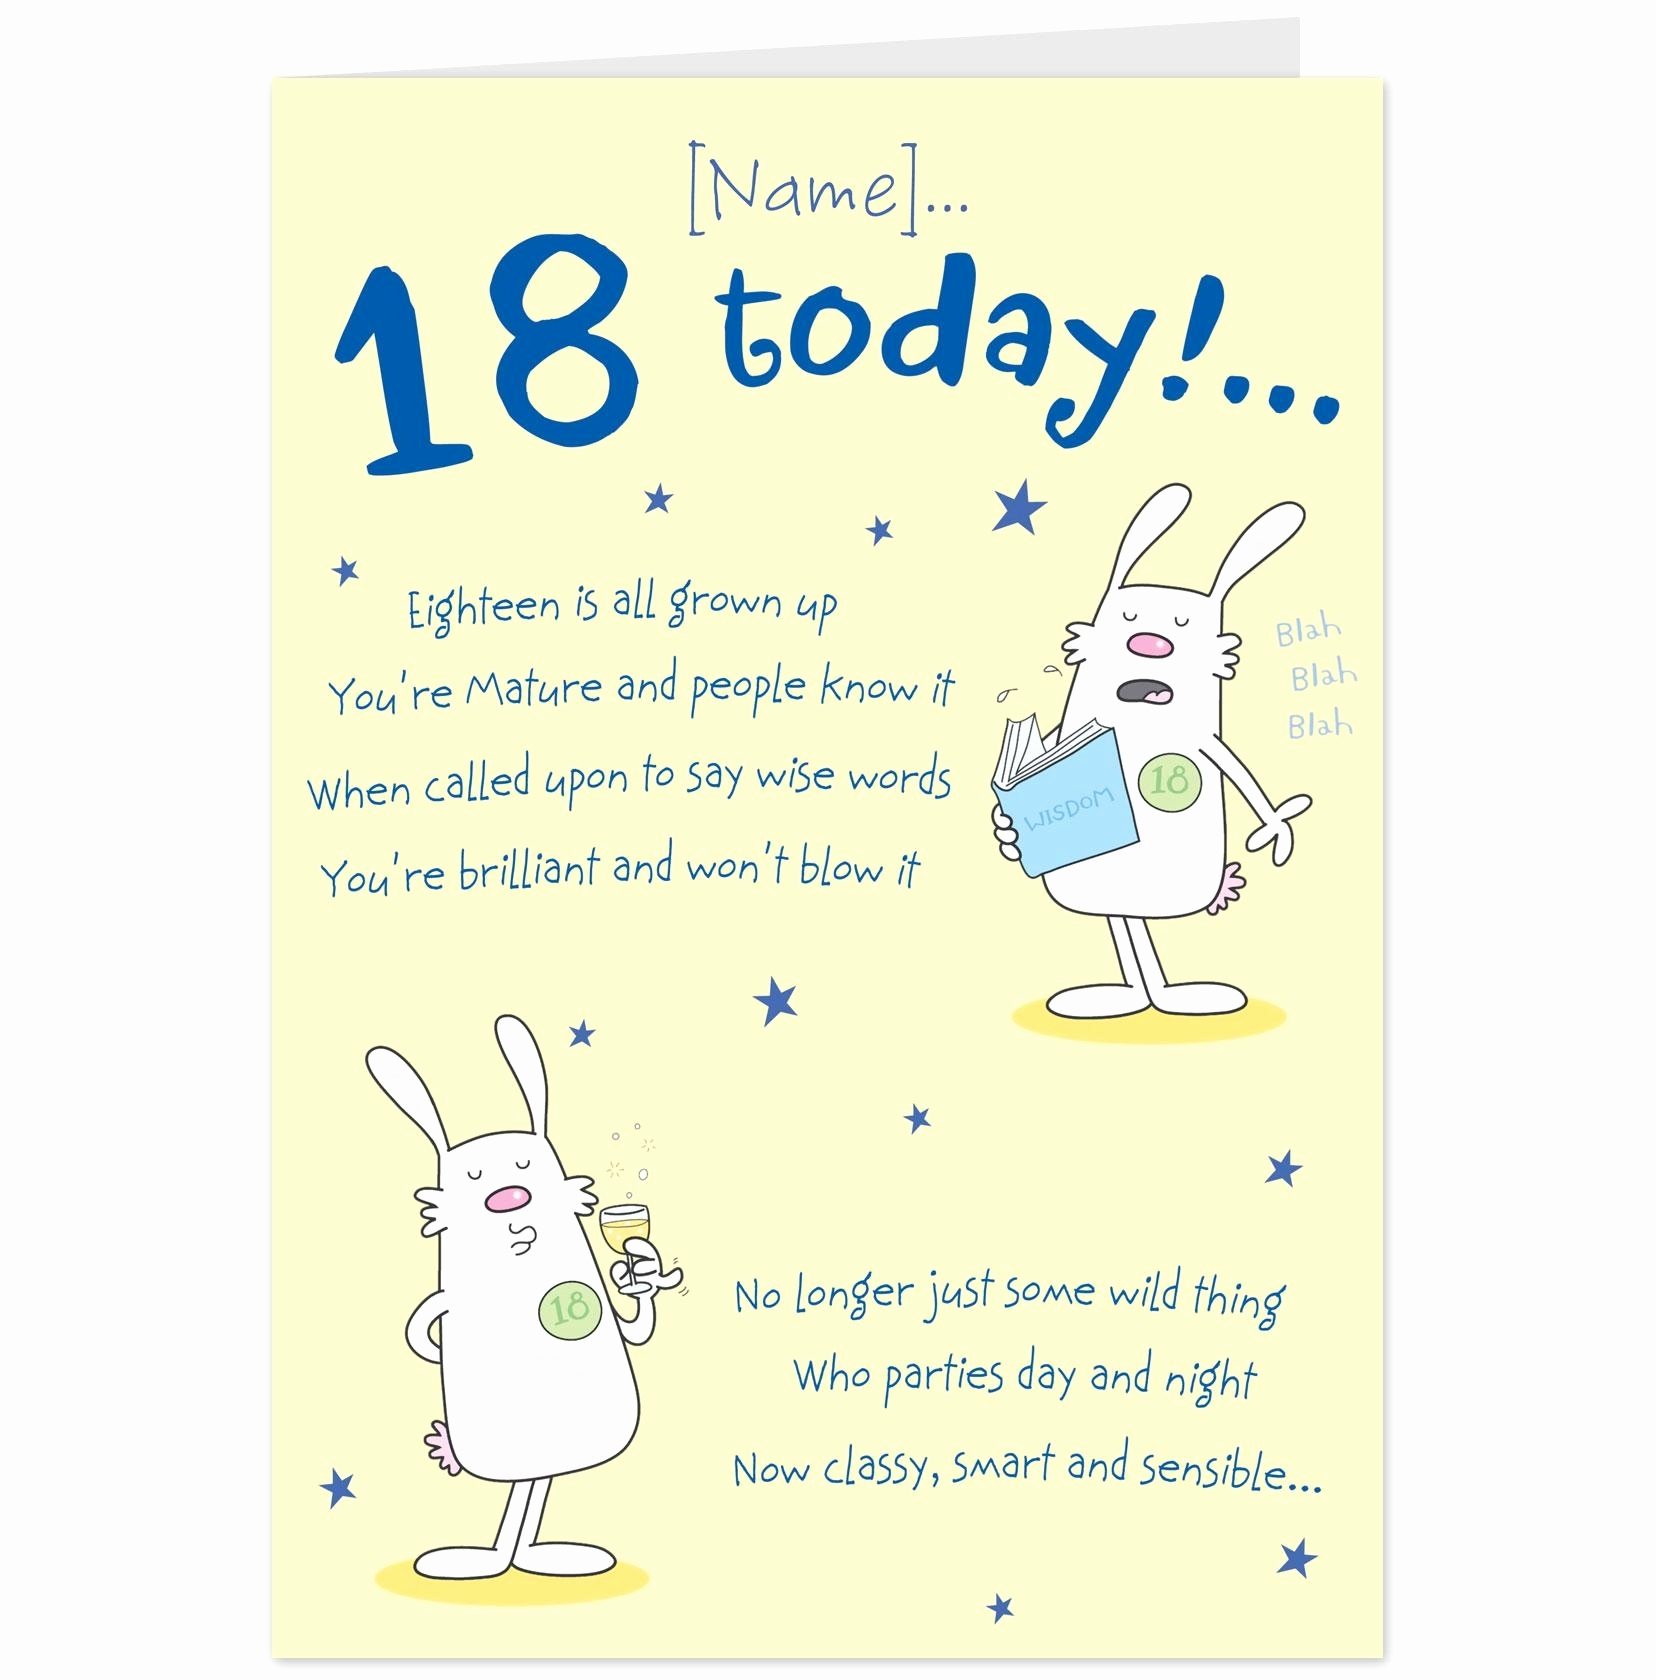 classy birthday card ideas ; birthday-cards-for-him-funny-elegant-happiness-quotes-surprising-happy-18-birthday-quotes-happy-18th-of-birthday-cards-for-him-funny